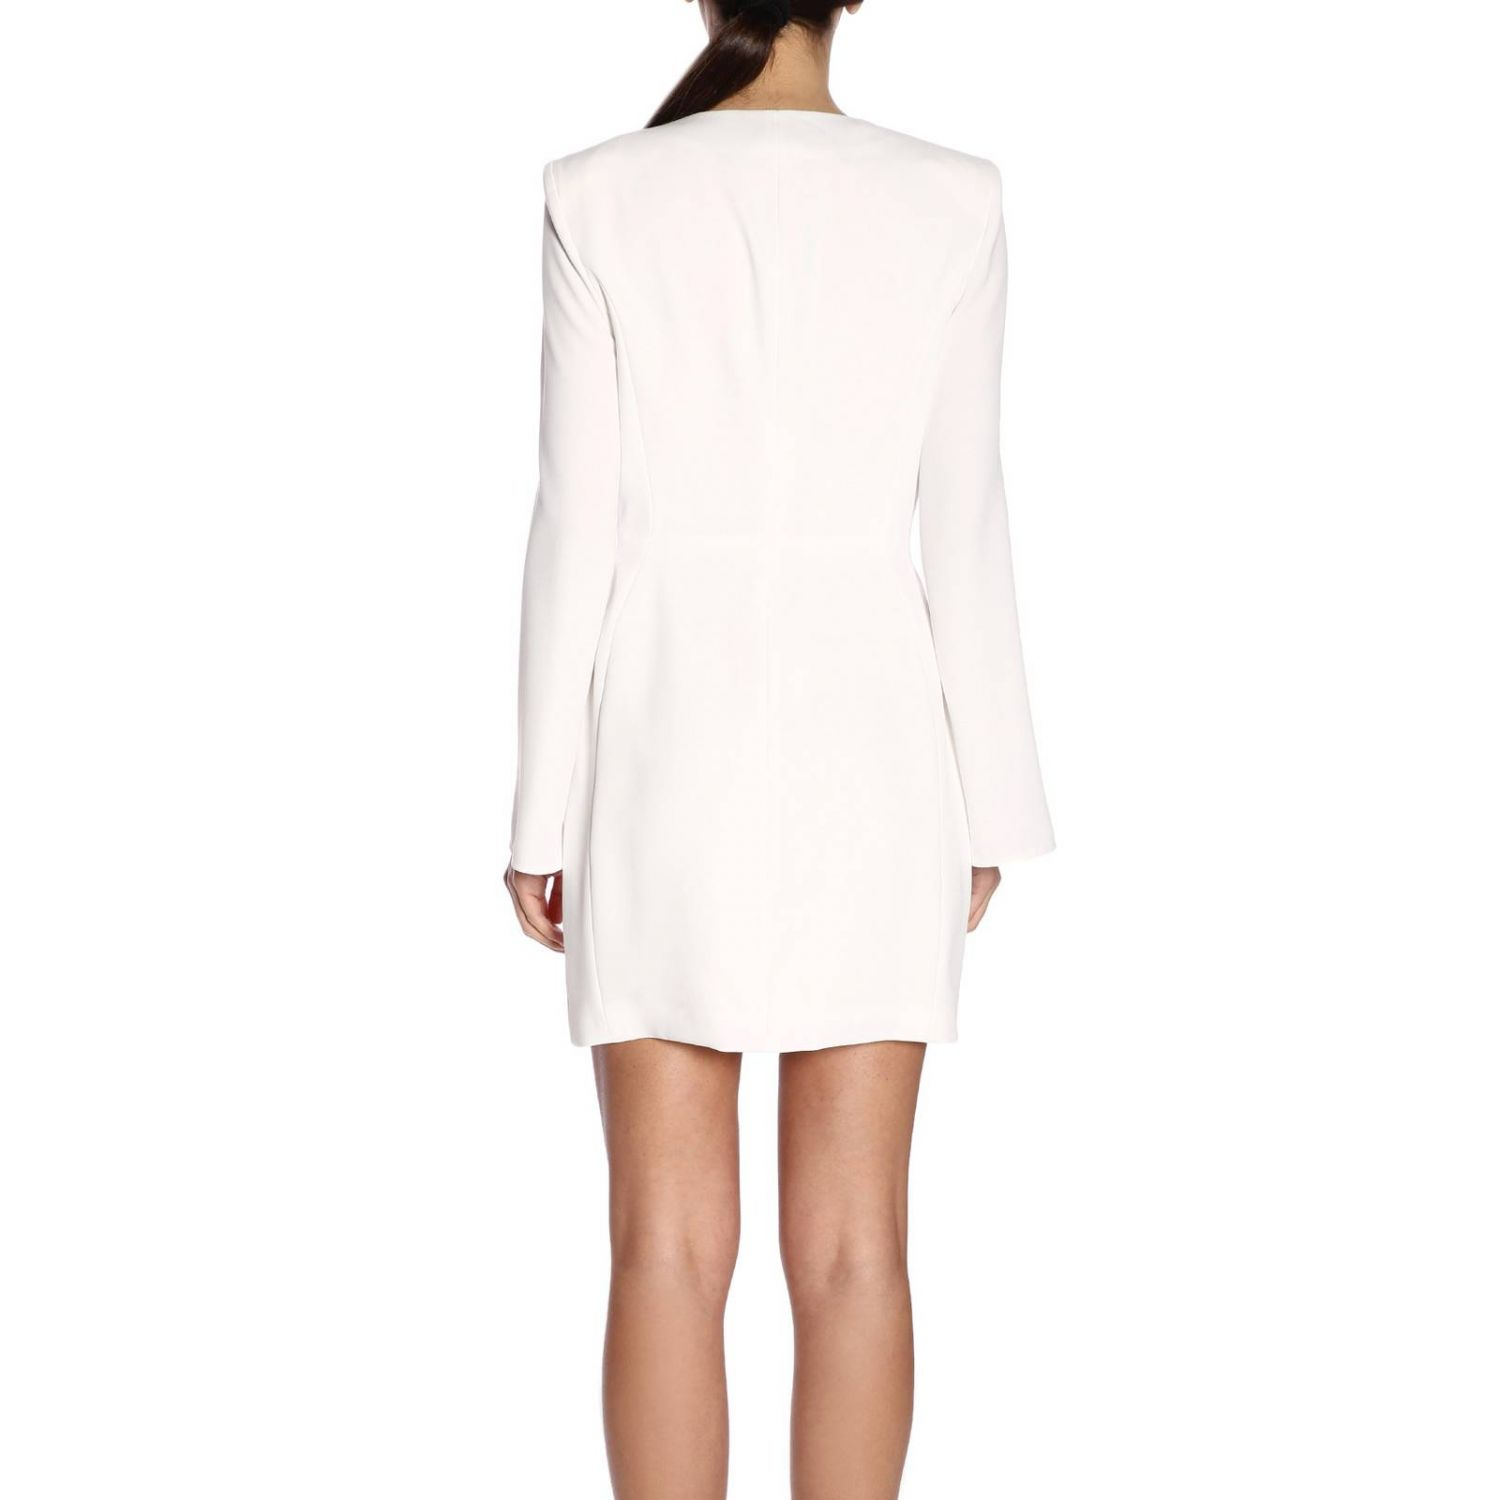 Dress women Elisabetta Franchi white 3